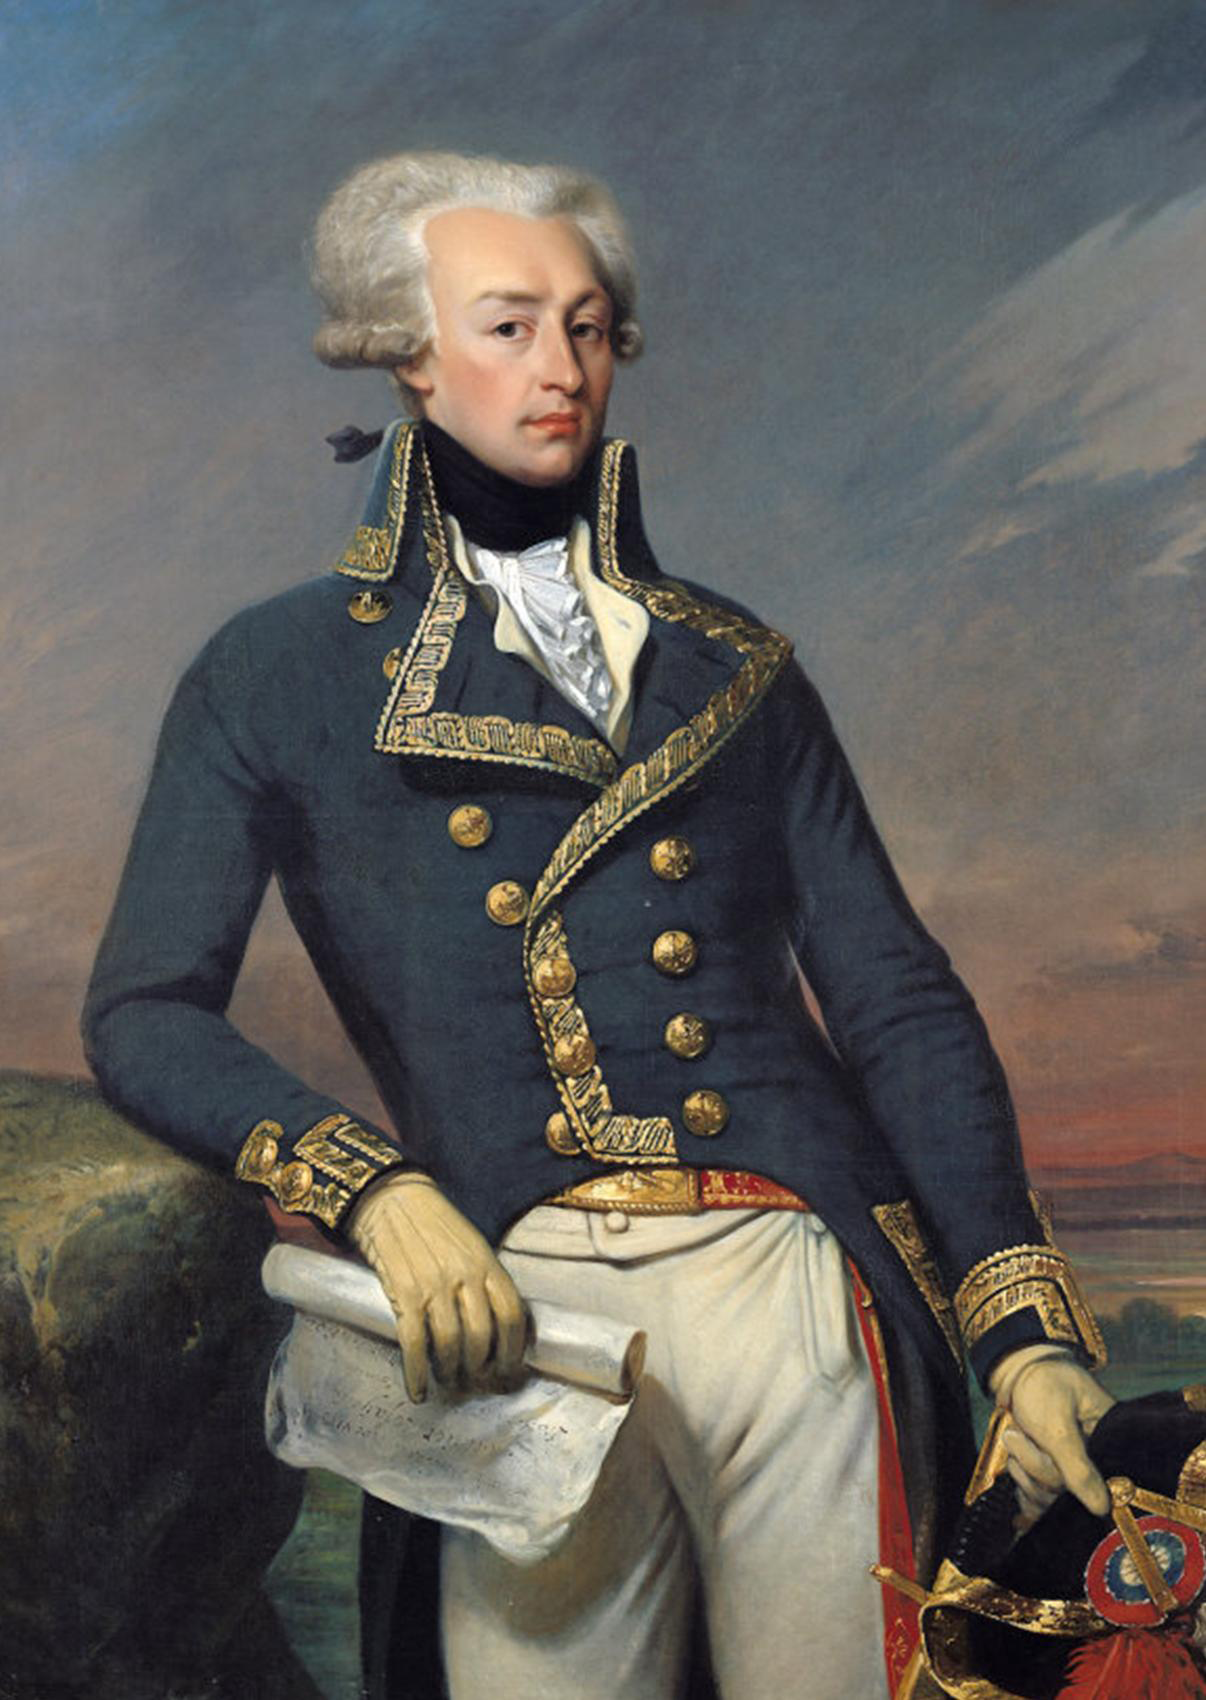 Patron+ Gen. LaFayette letters - LaFayette arrives in Alabama - John Banks reports progress